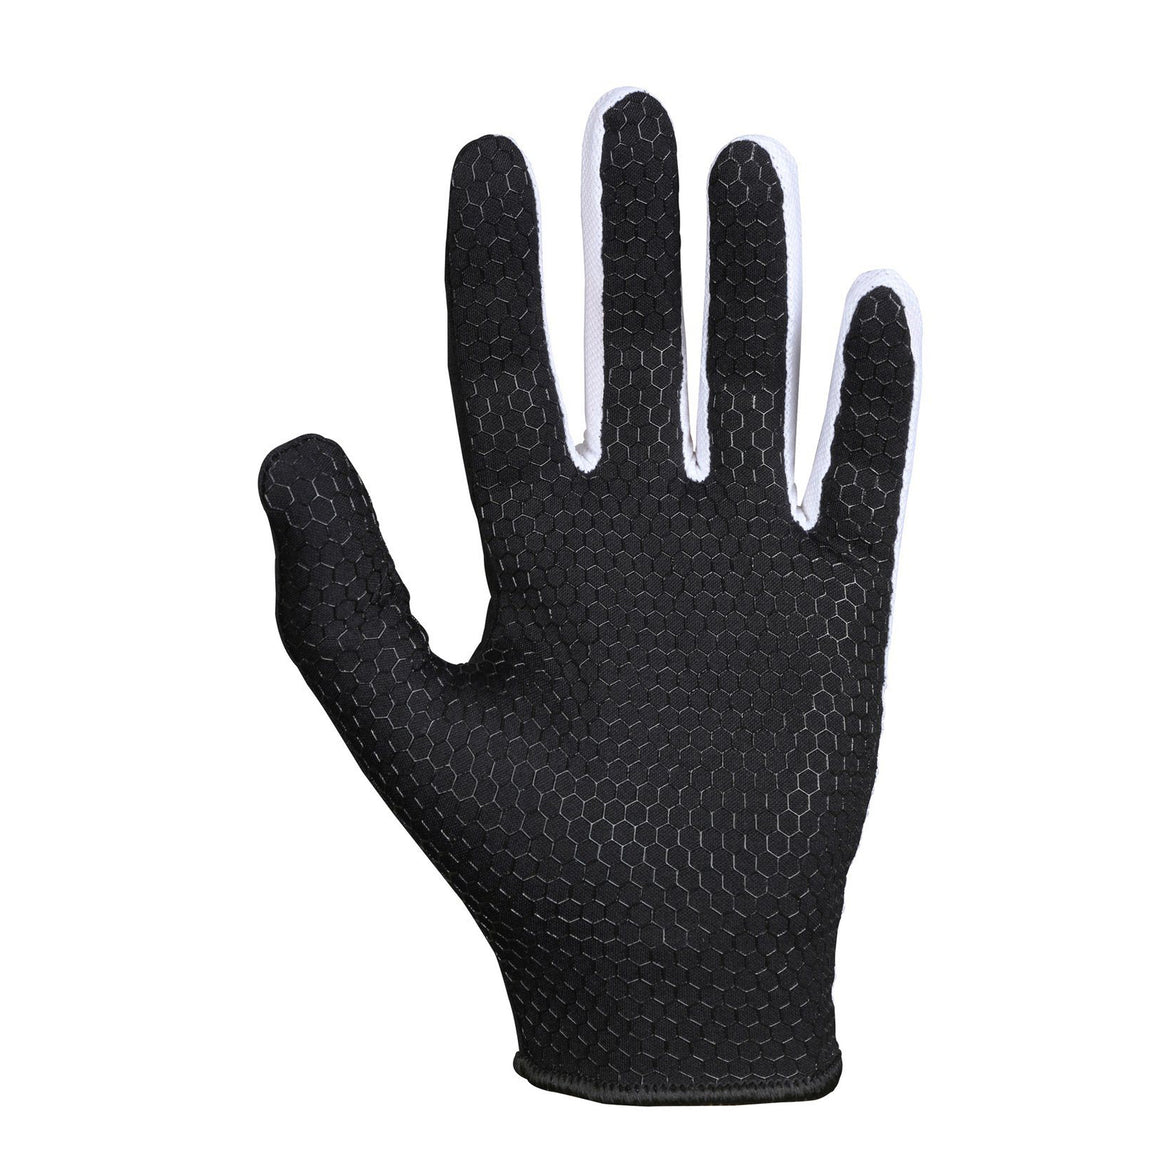 Skinful Hockey Gloves in Black